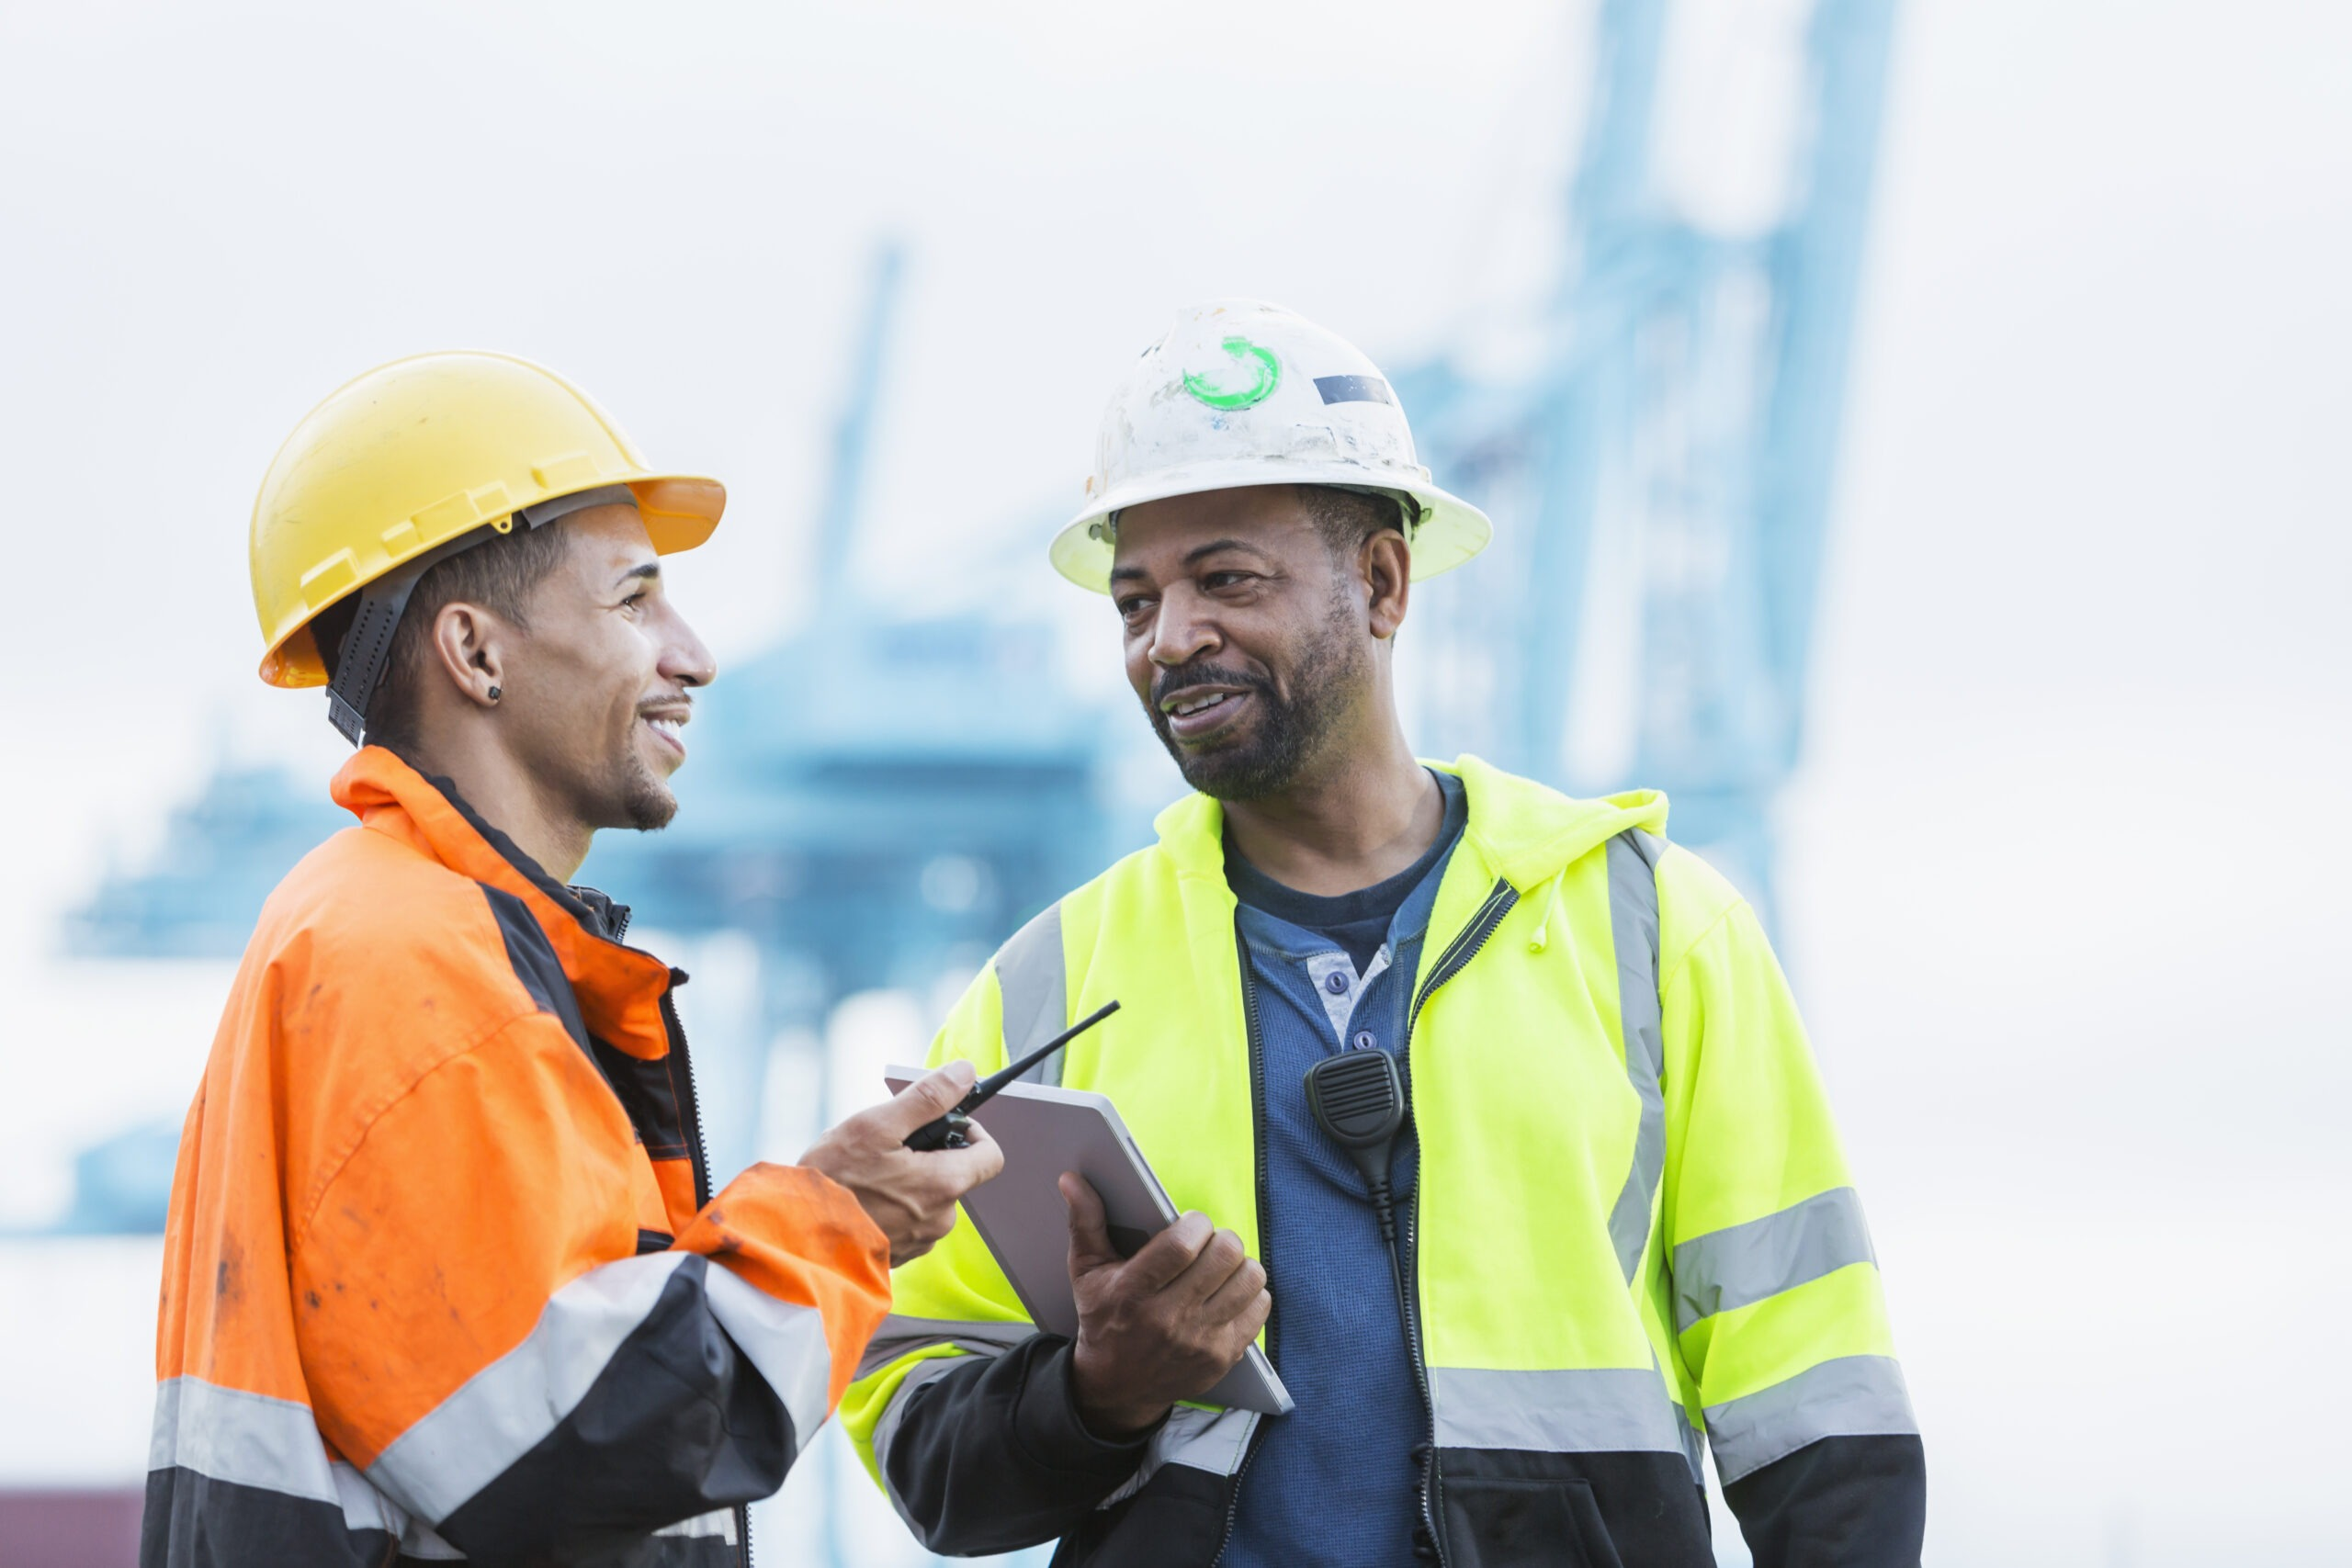 Two multi-ethnic men working at a shipping port, having a face to face discussion. The mature African-American man in the yellow reflective jacket is in his 50s. His mixed race Hispanic coworker is in his 30s.